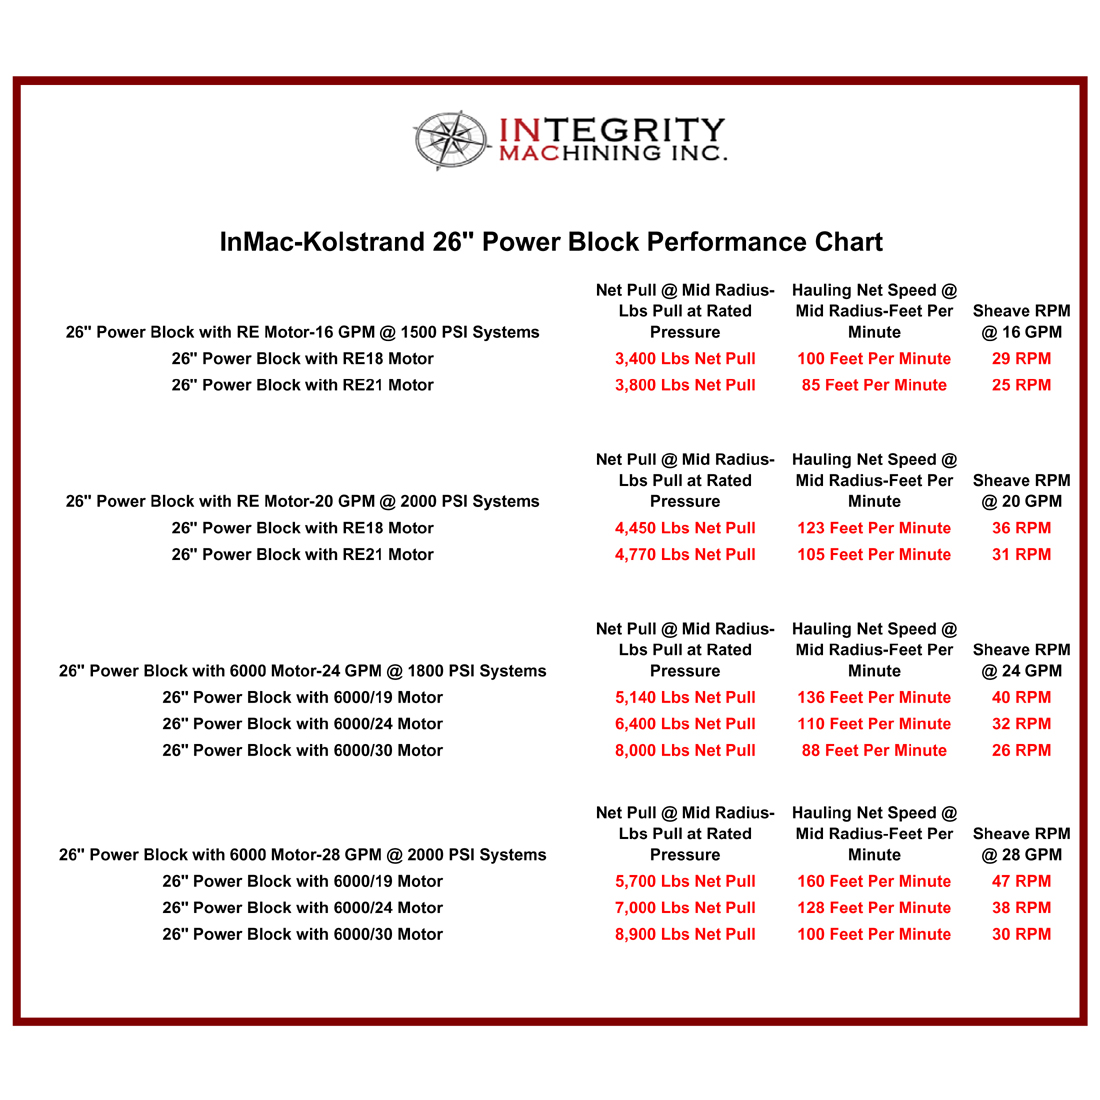 26-in-power-block-performance-spreadsheet-copy.jpg